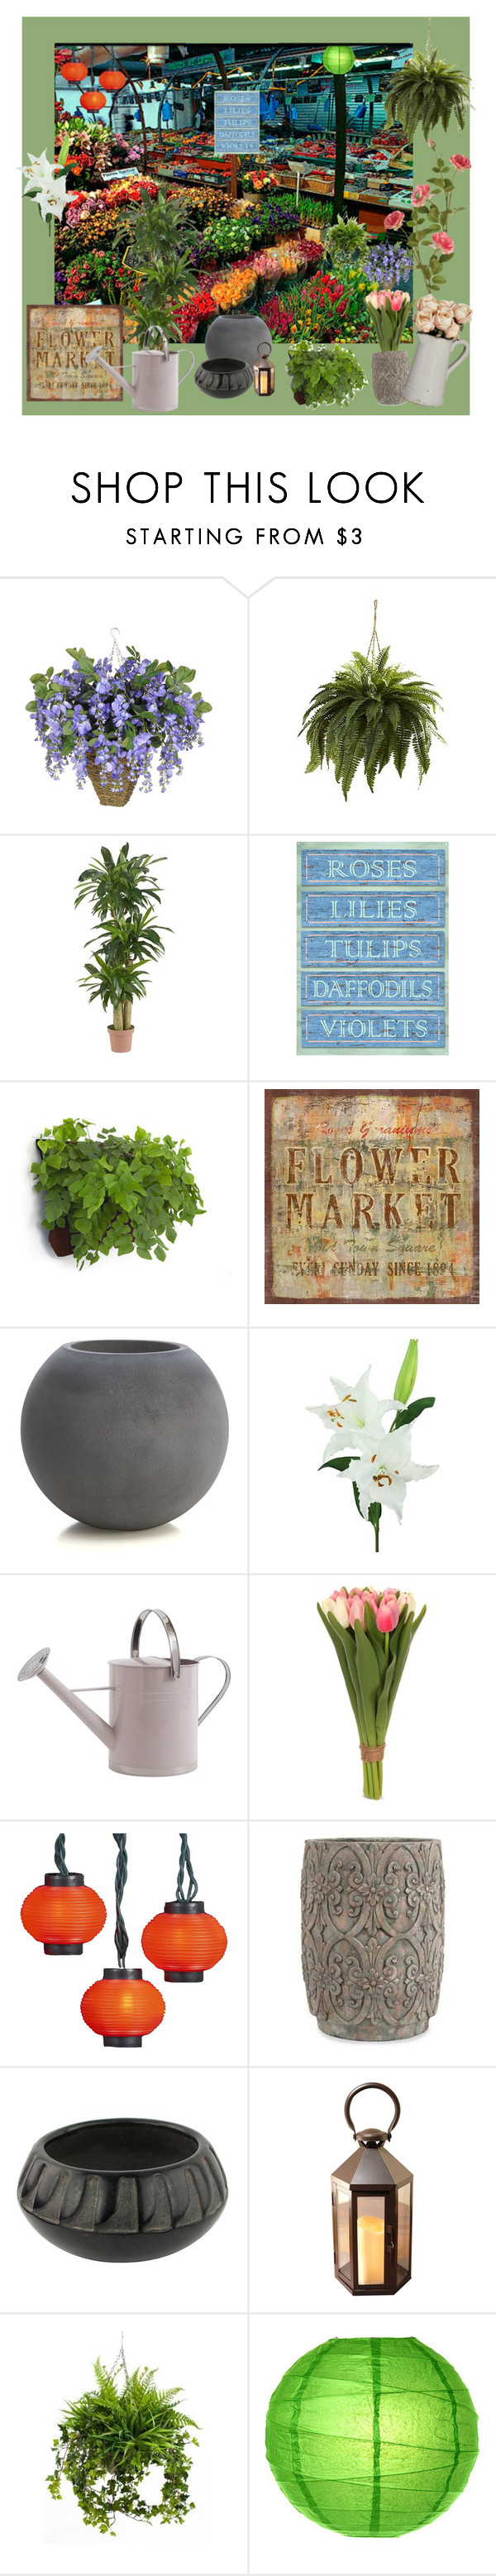 """Flower market"" by pumsiks ❤ liked on Polyvore featuring interior, interiors, interior design, home, home decor, interior decorating, Nearly Natural, Dot & Bo, Home Decorators Collection and Crate and Barrel"